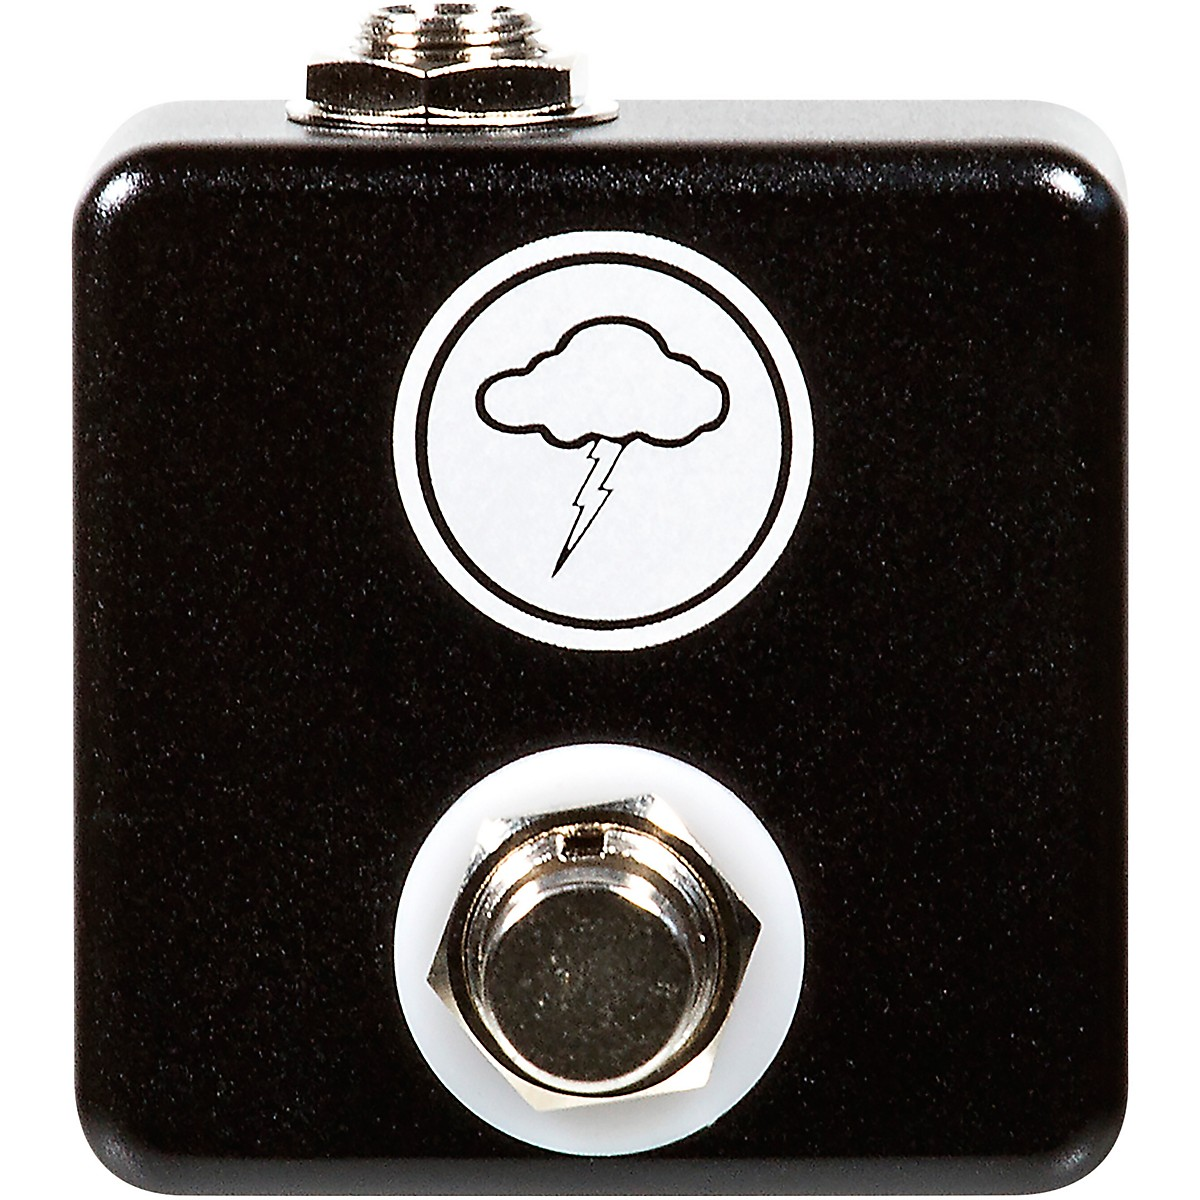 Throne Room Pedals Tiny Amp Footswitch